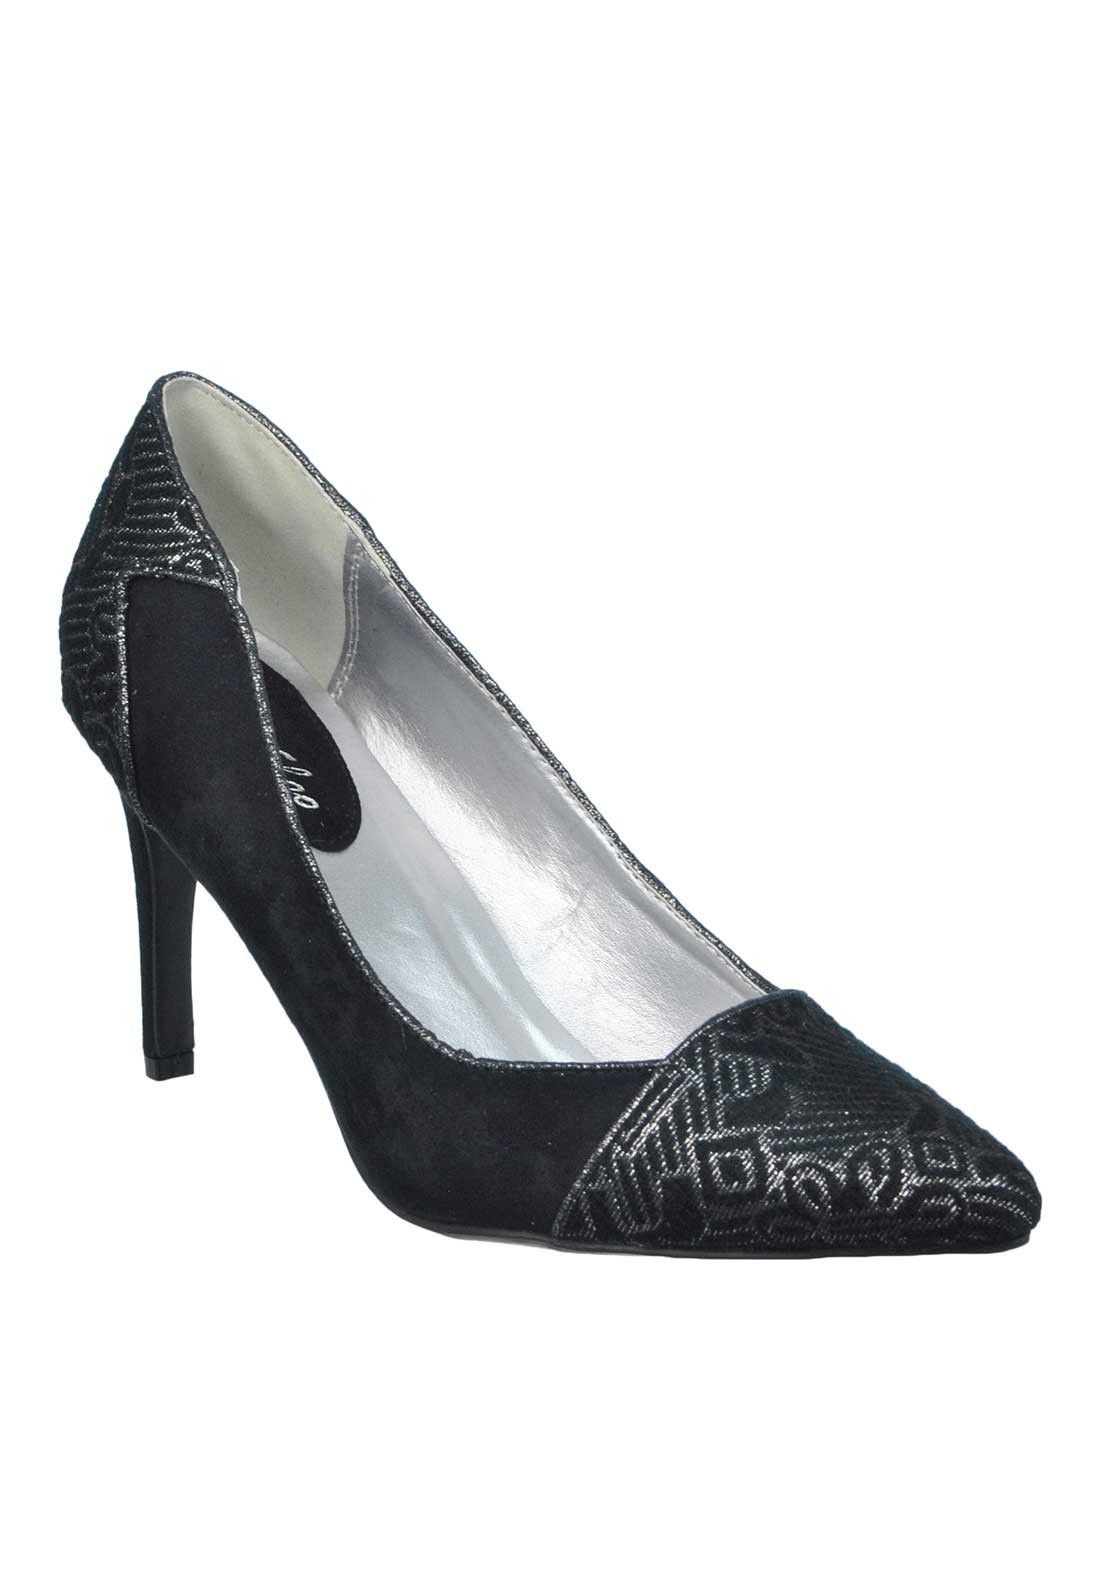 Ruby Shoo Sally Jacquard Print Pointed Toe Heeled Shoes, Black